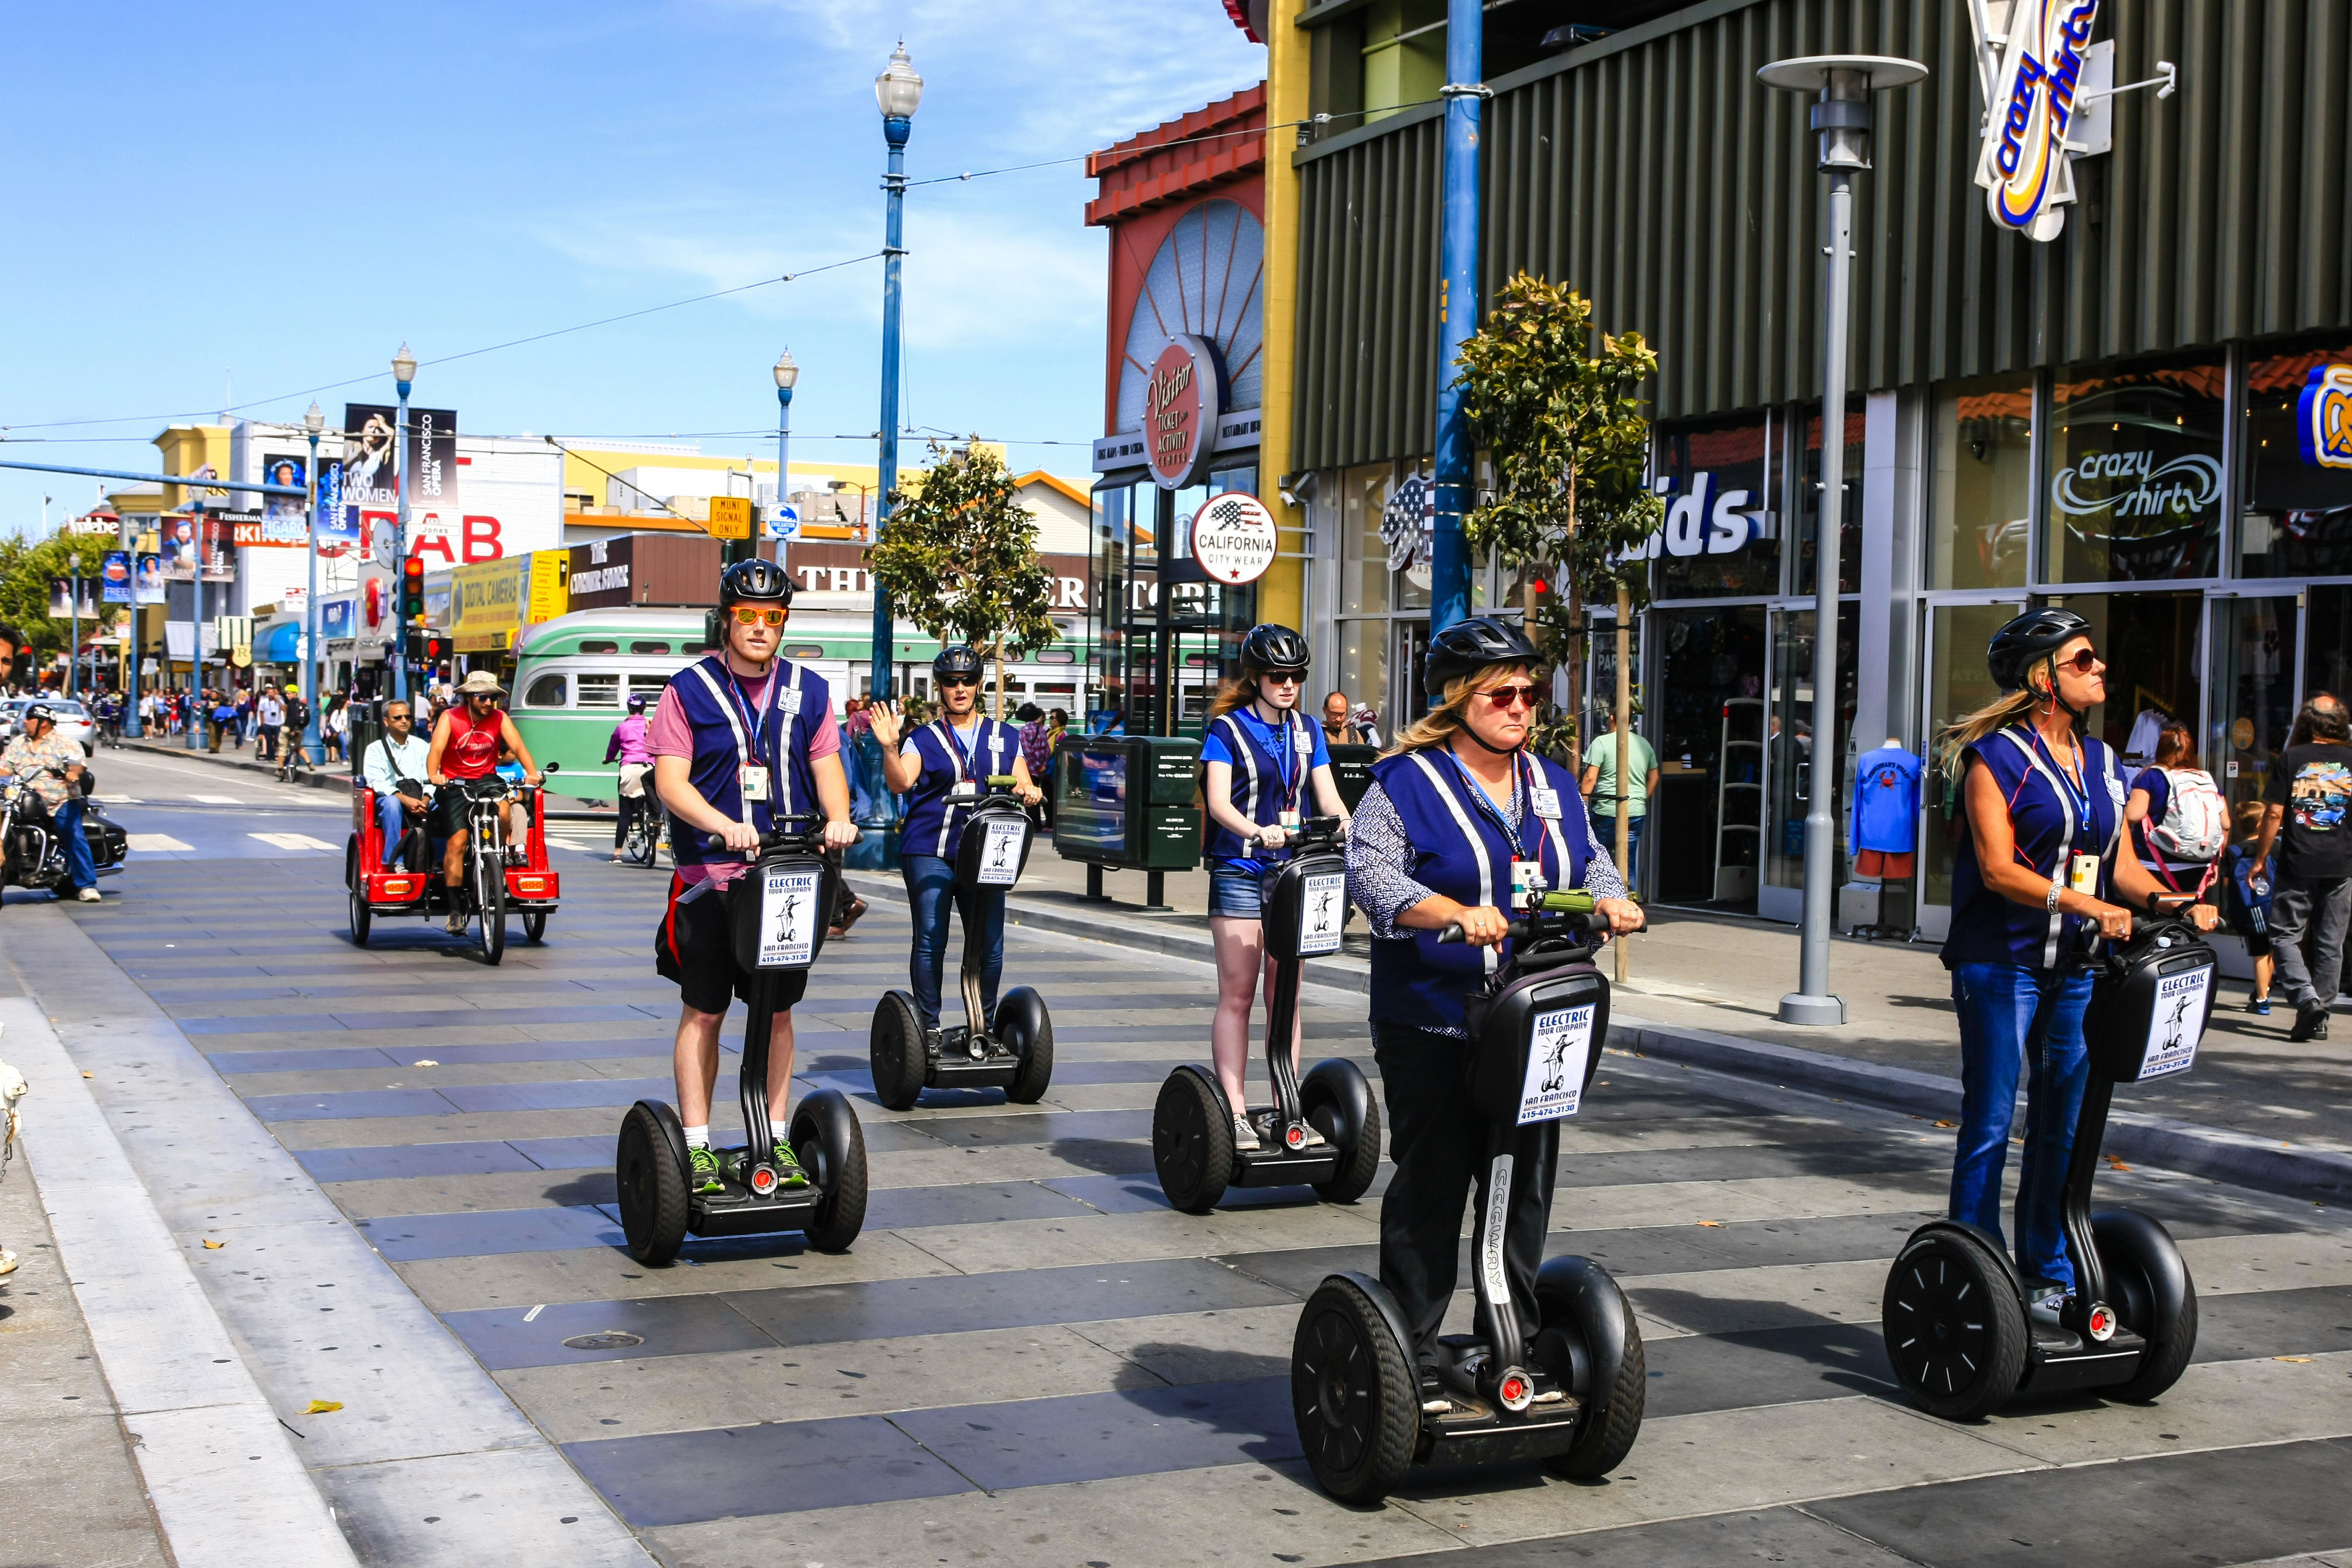 People riding Segway's in Fisherman's Wharf area of San Francisco